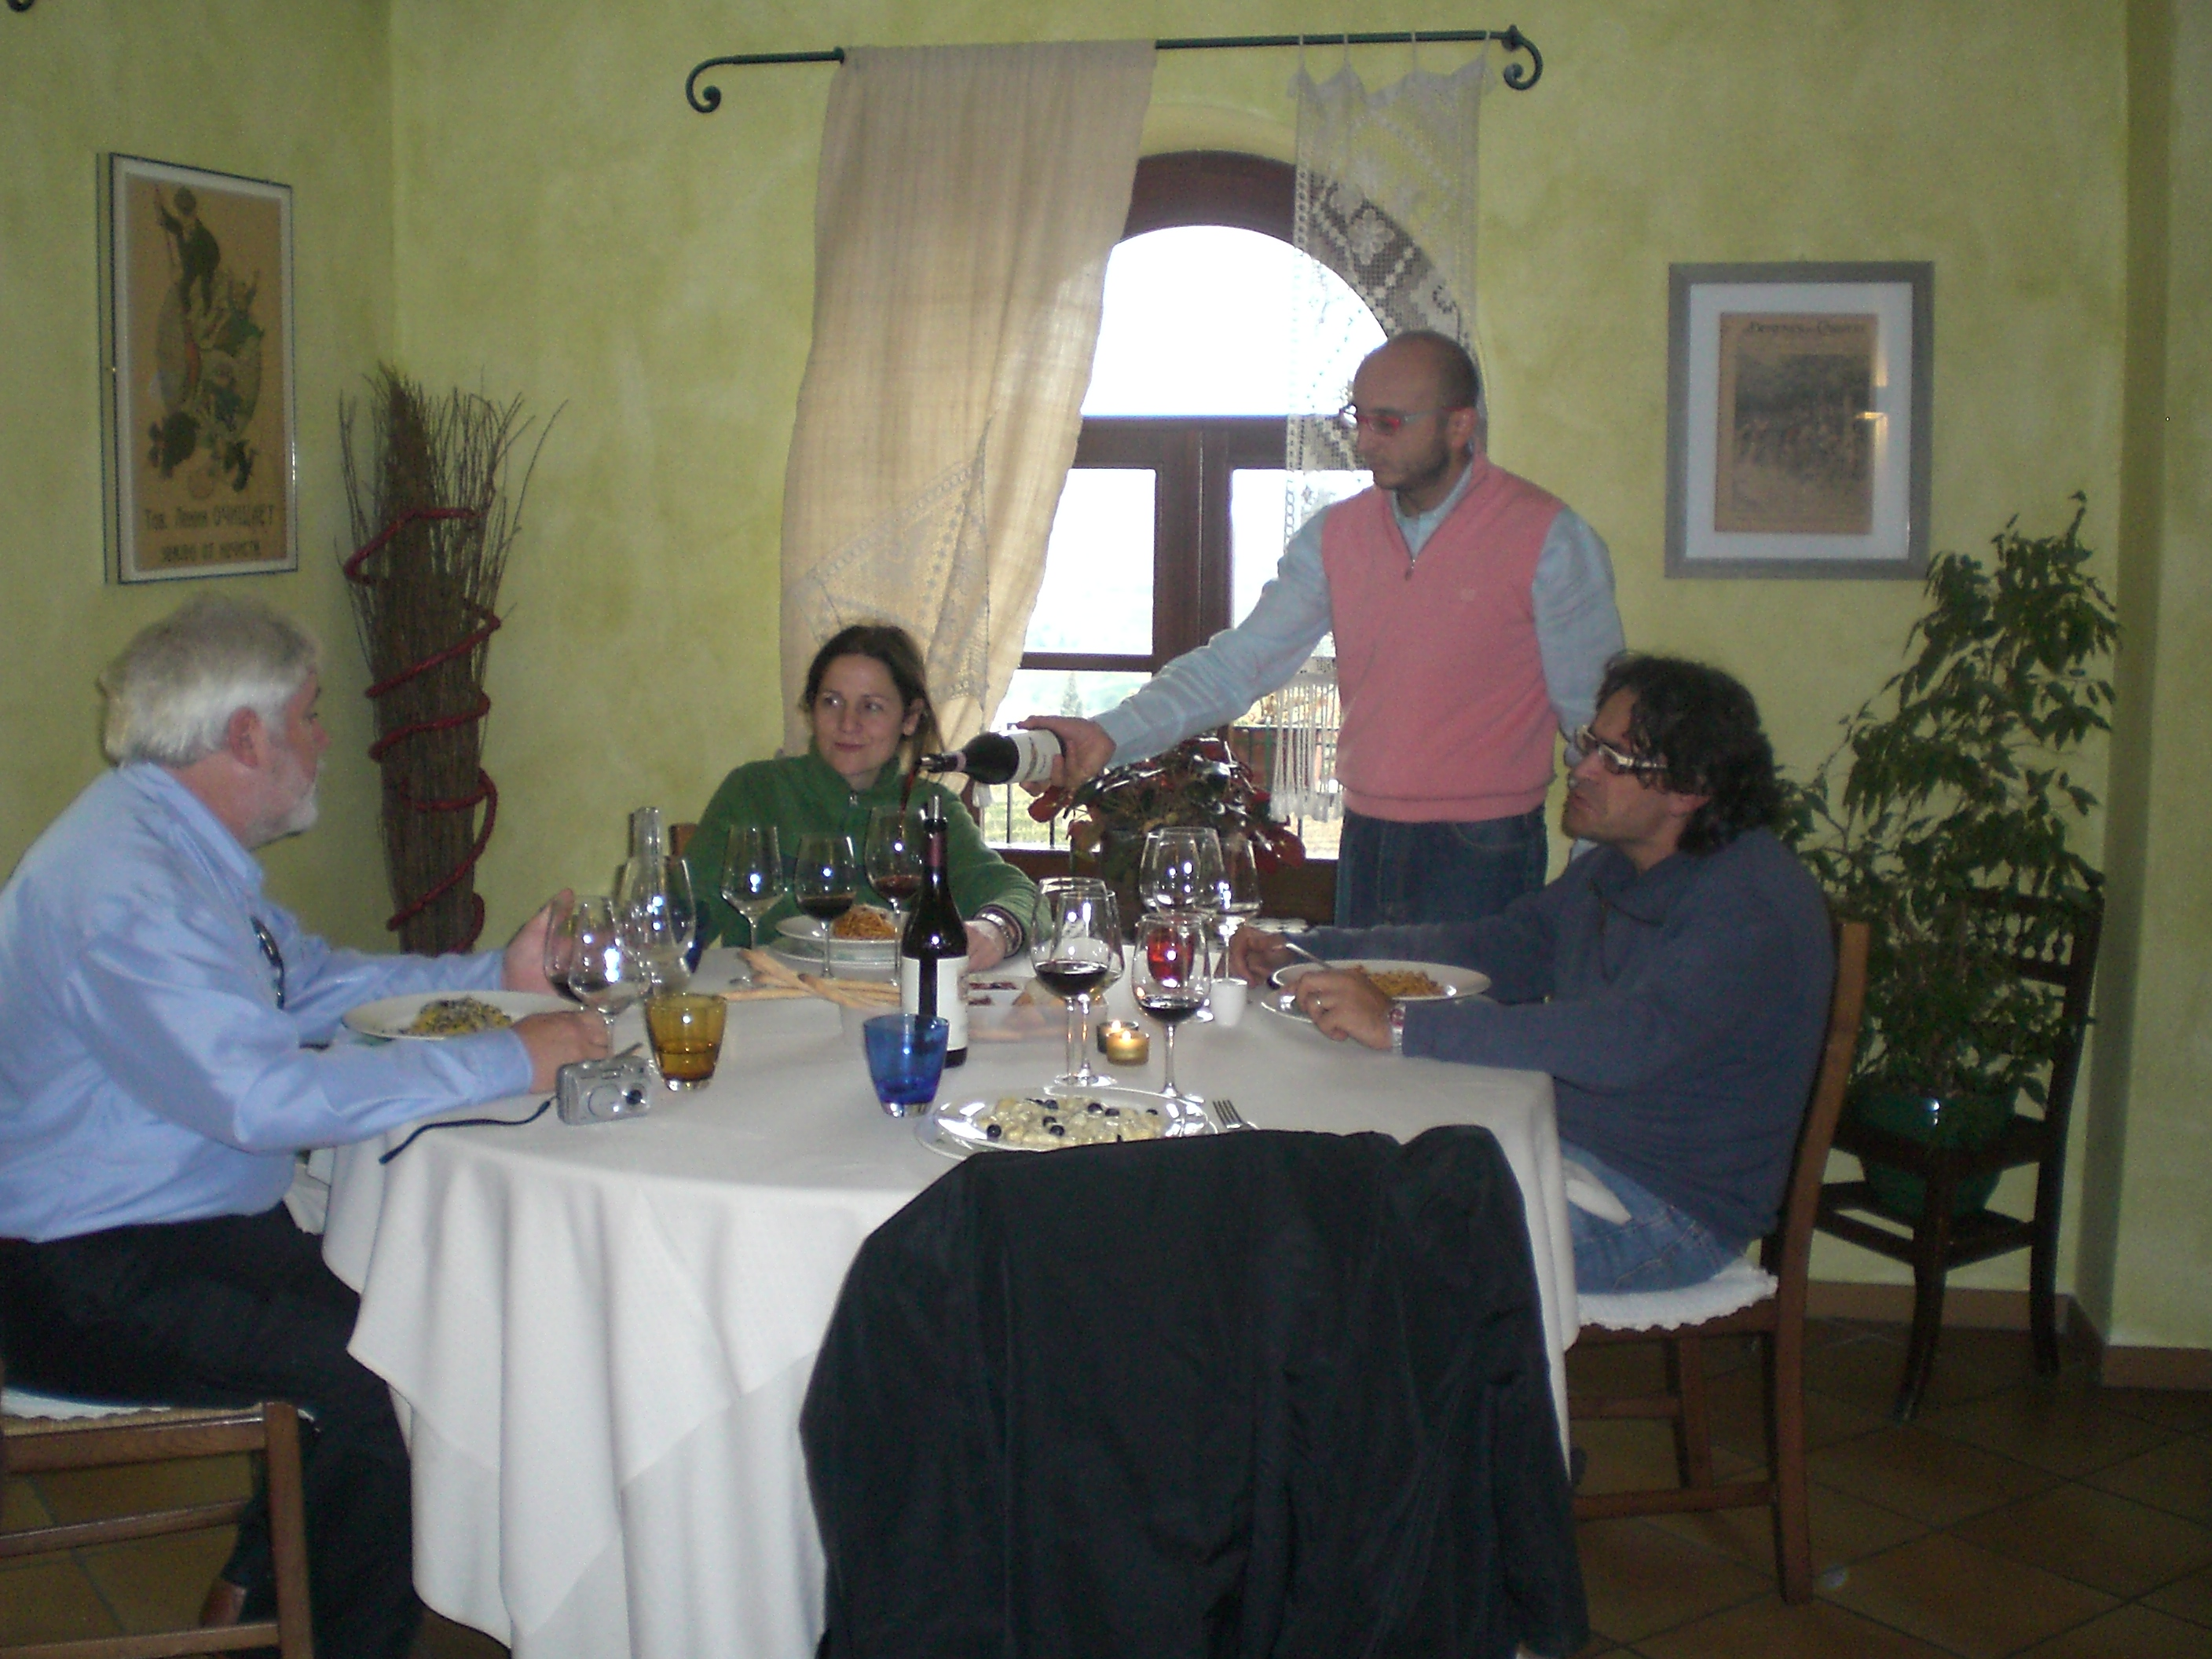 Lunch in Barolo region, Piemonte, Italy with winemaker from Vietti Winery, Luca Currado.